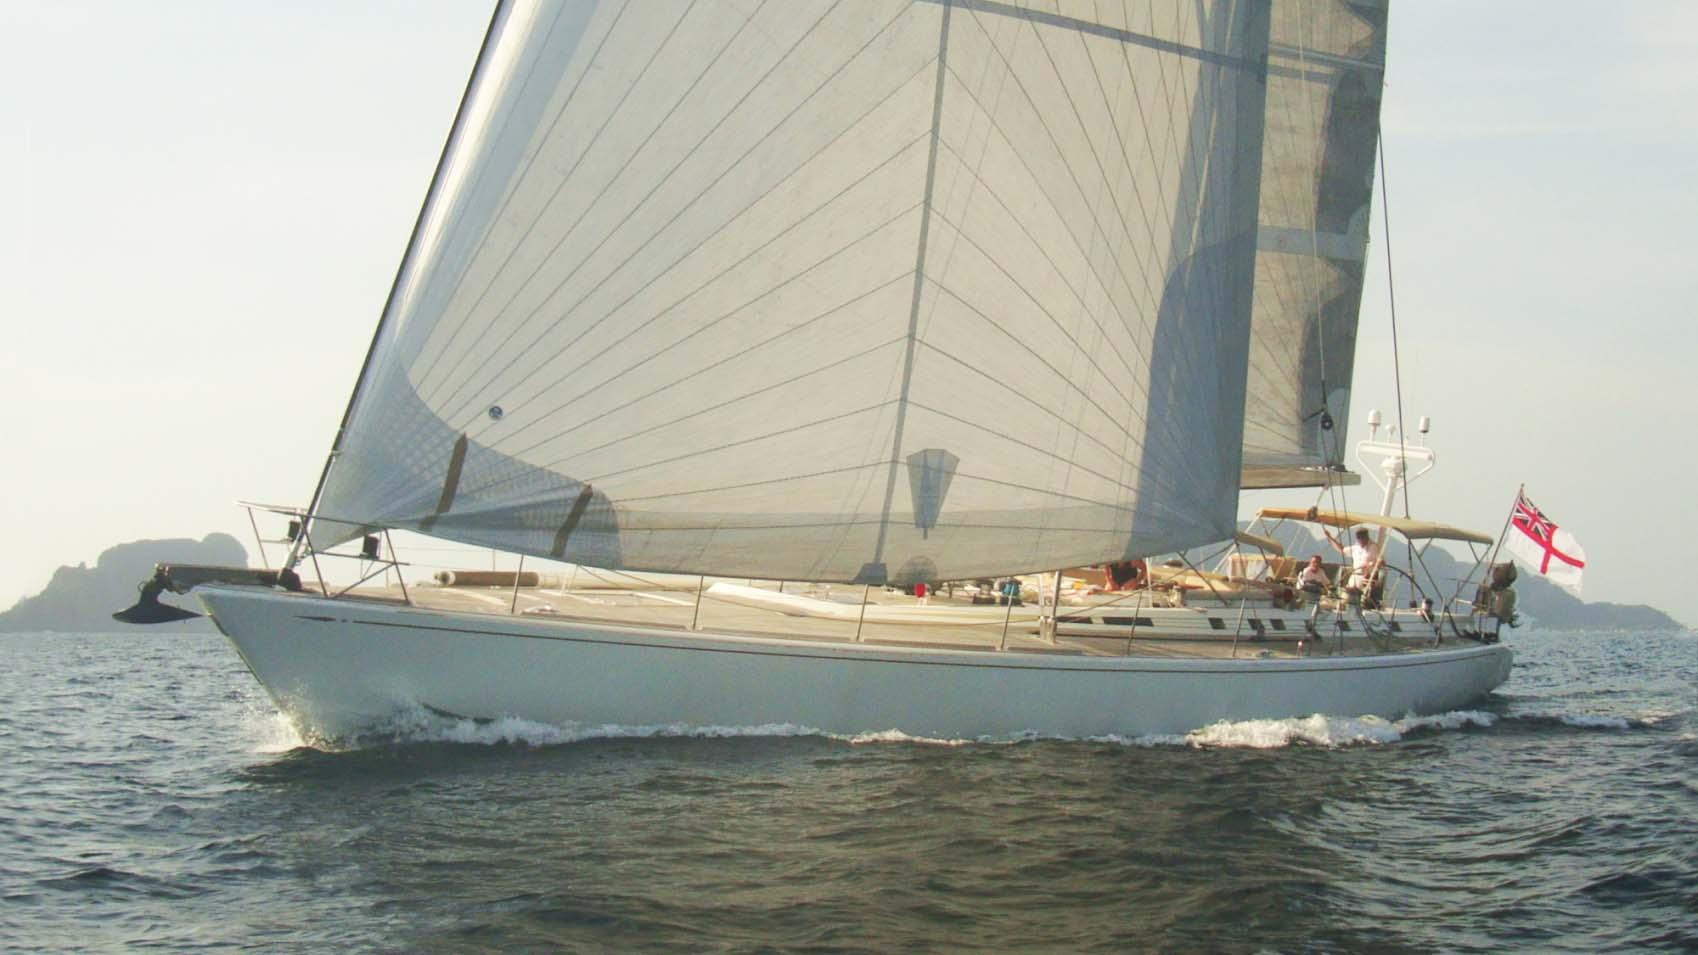 ASPIRATION sailing yacht cruising